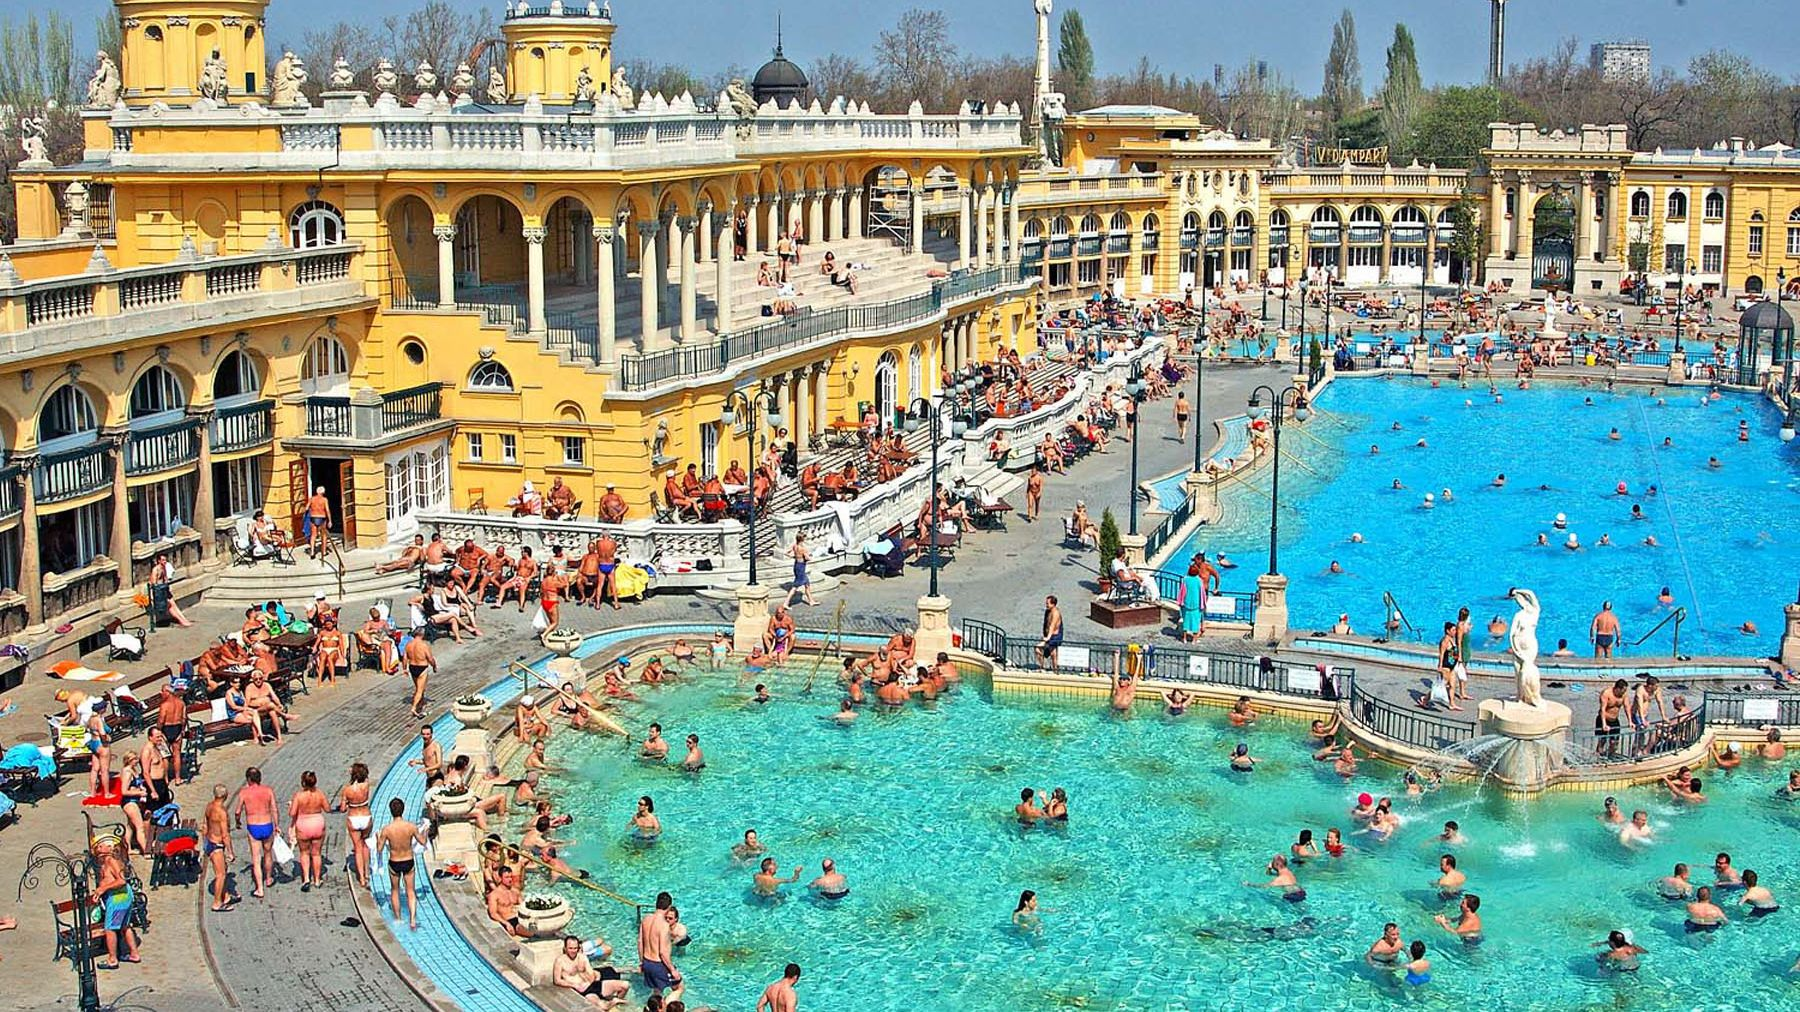 overview of expansive pools filled with people